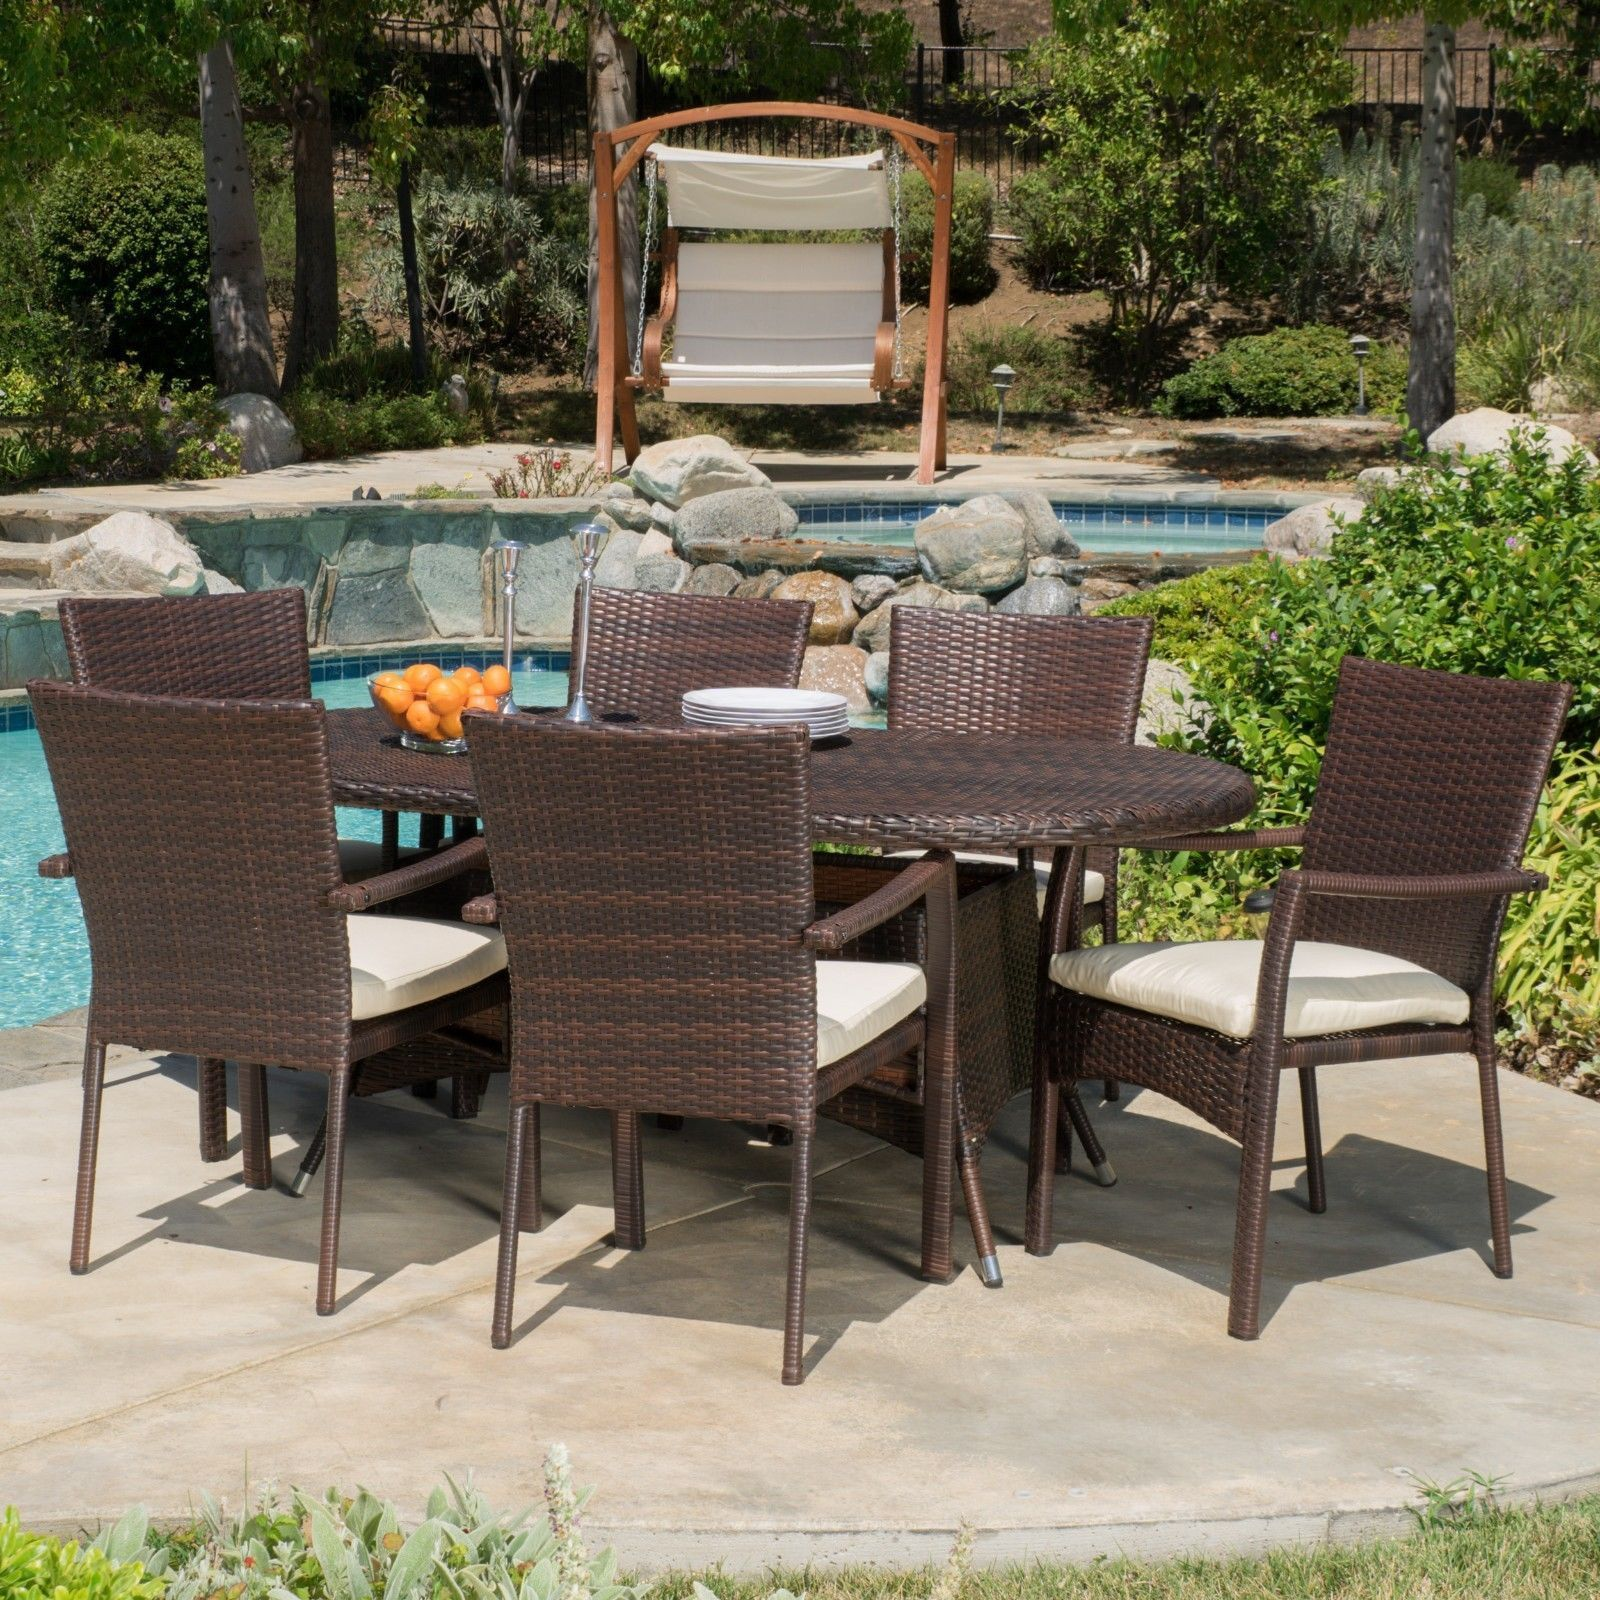 Ordinaire 7 Piece Wicker Contemporary Dining Patio Furniture Set With Cushion   Brown